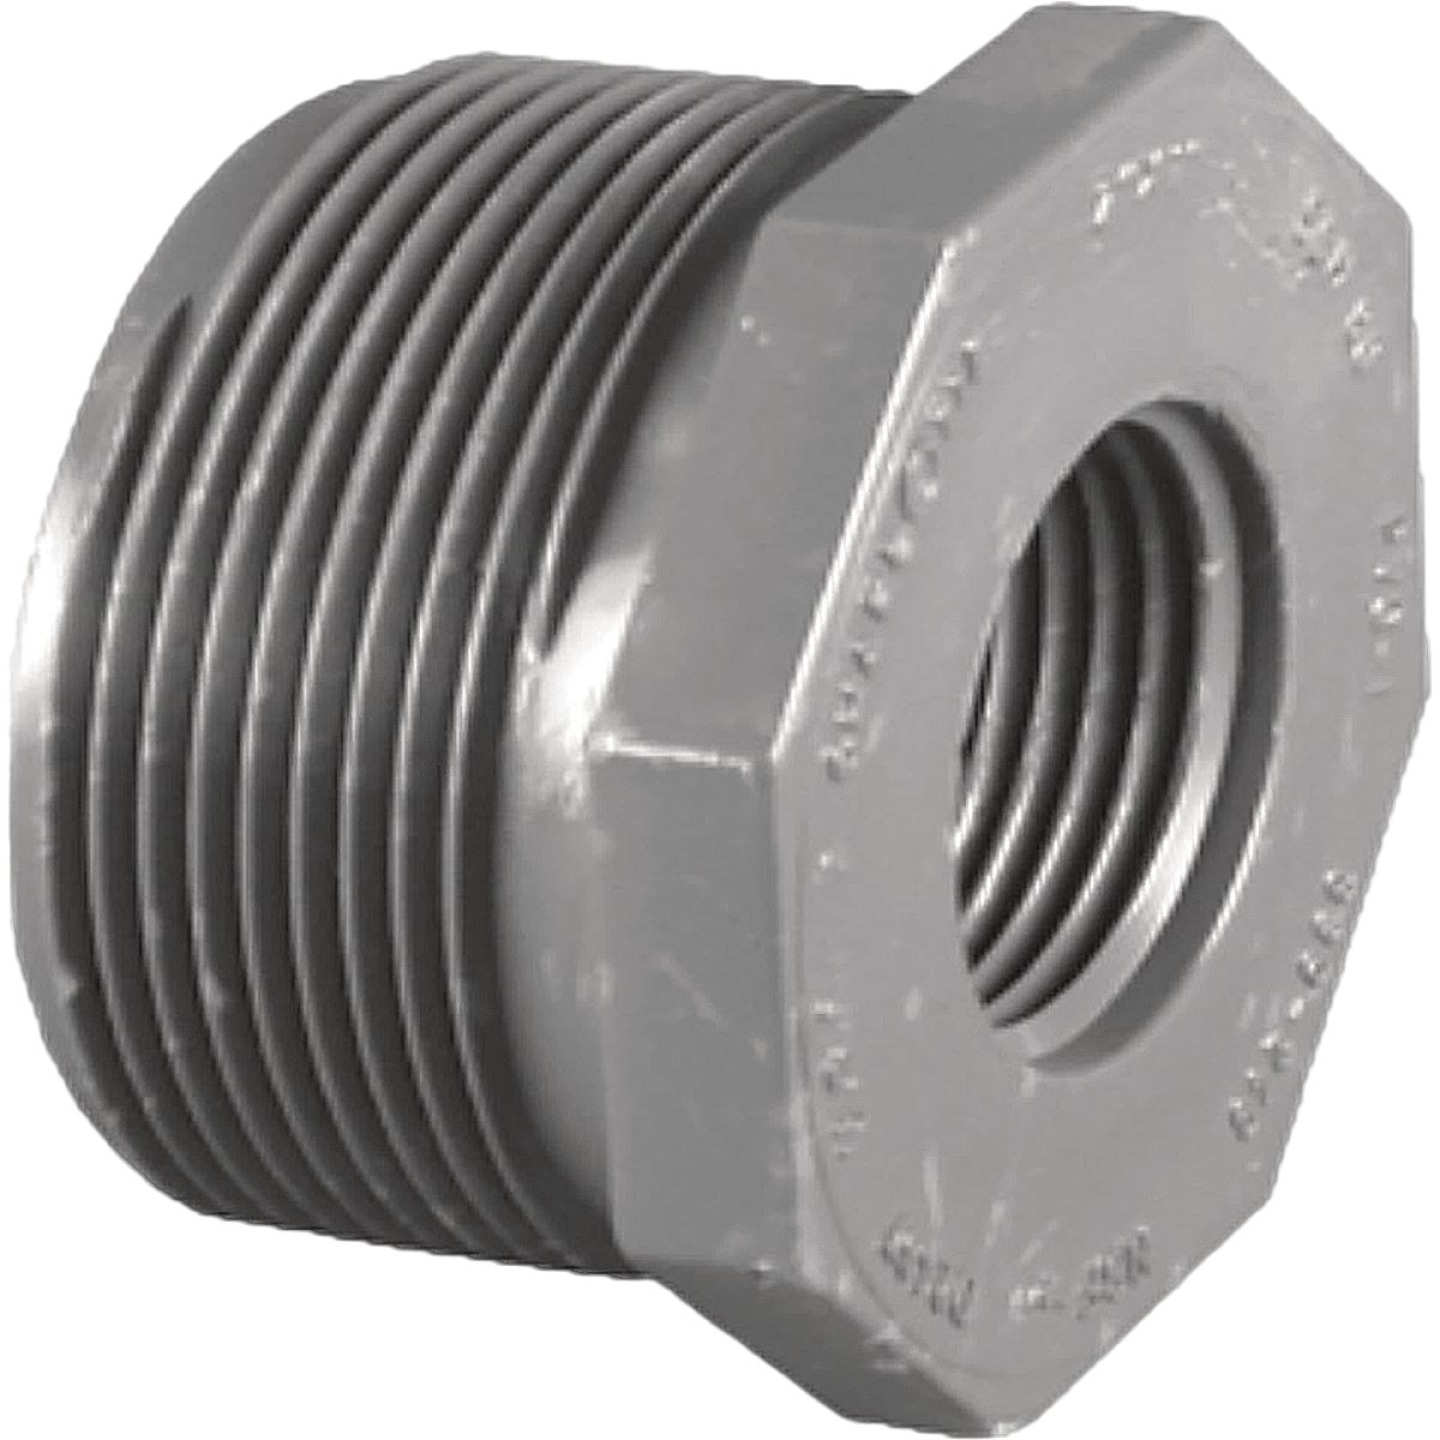 Charlotte Pipe 1-1/2 In. MPT x 1-1/4 In. FPT Schedule 80 Reducing PVC Bushing Image 1